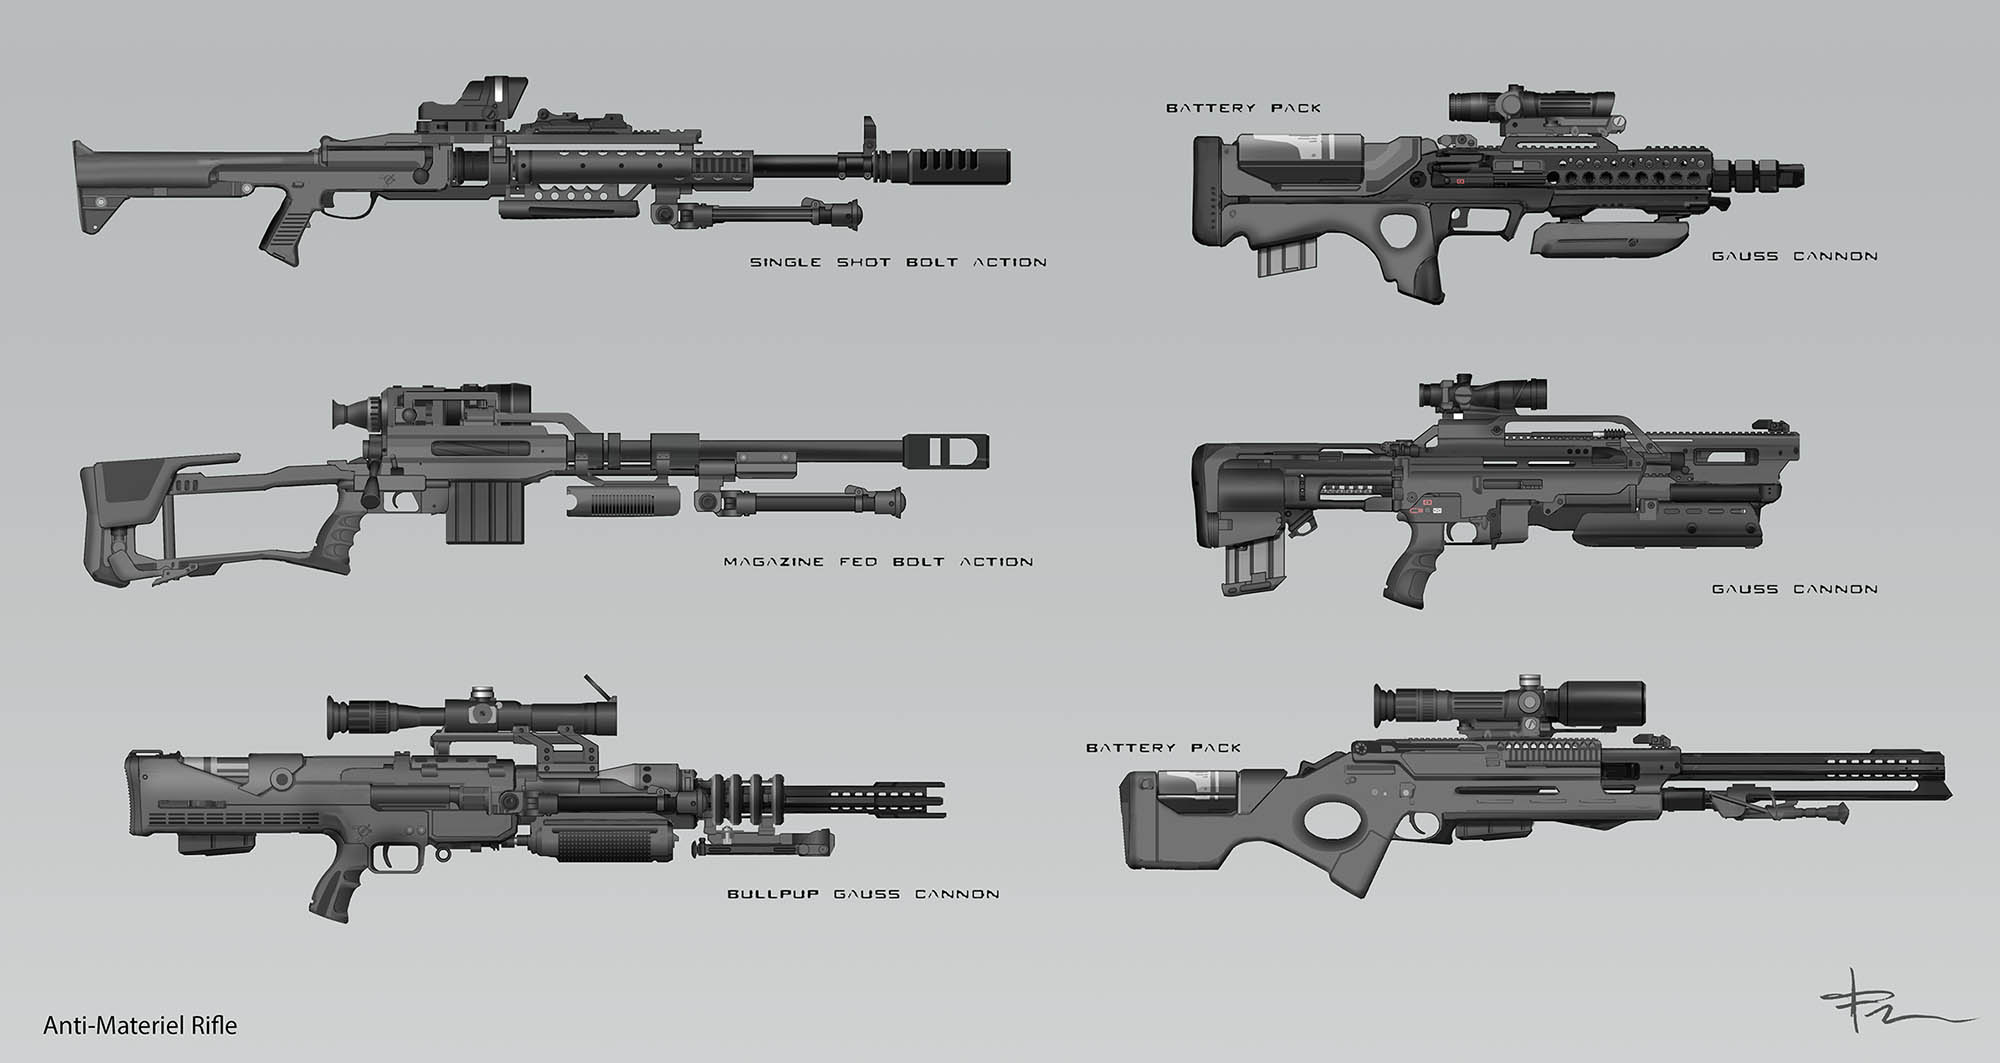 TJFRame-Art_Evolve_AntiMaterielRifle.jpg